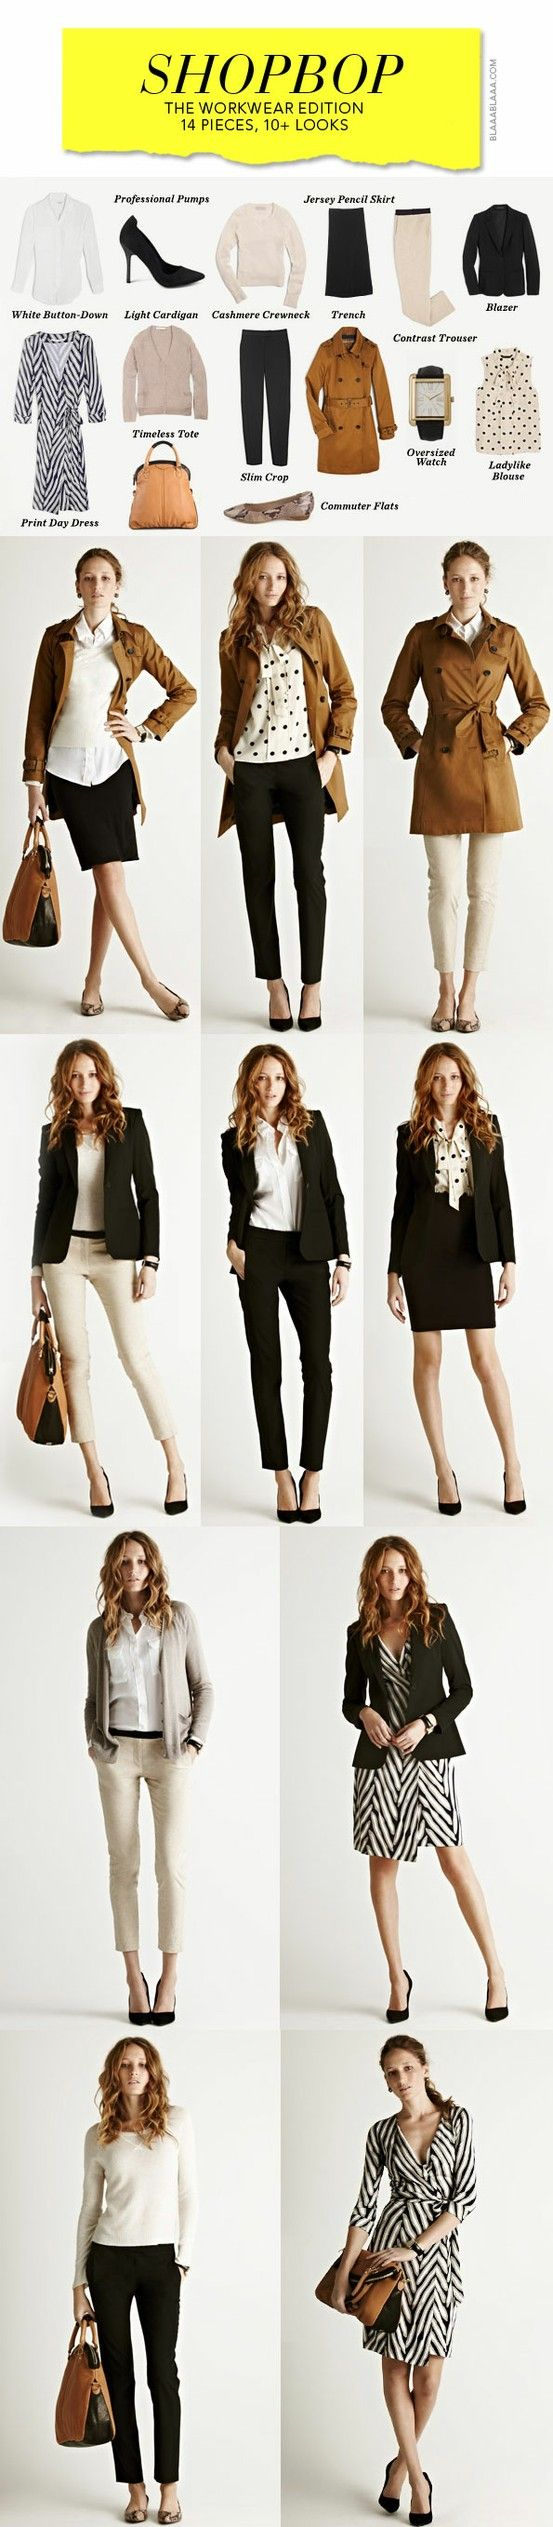 Idea.      work wardrobe with 14 pieces, 10+ looks #shopbop http://www.shopbop.com/ci/3/ww/workwear-ultimate-closet.html